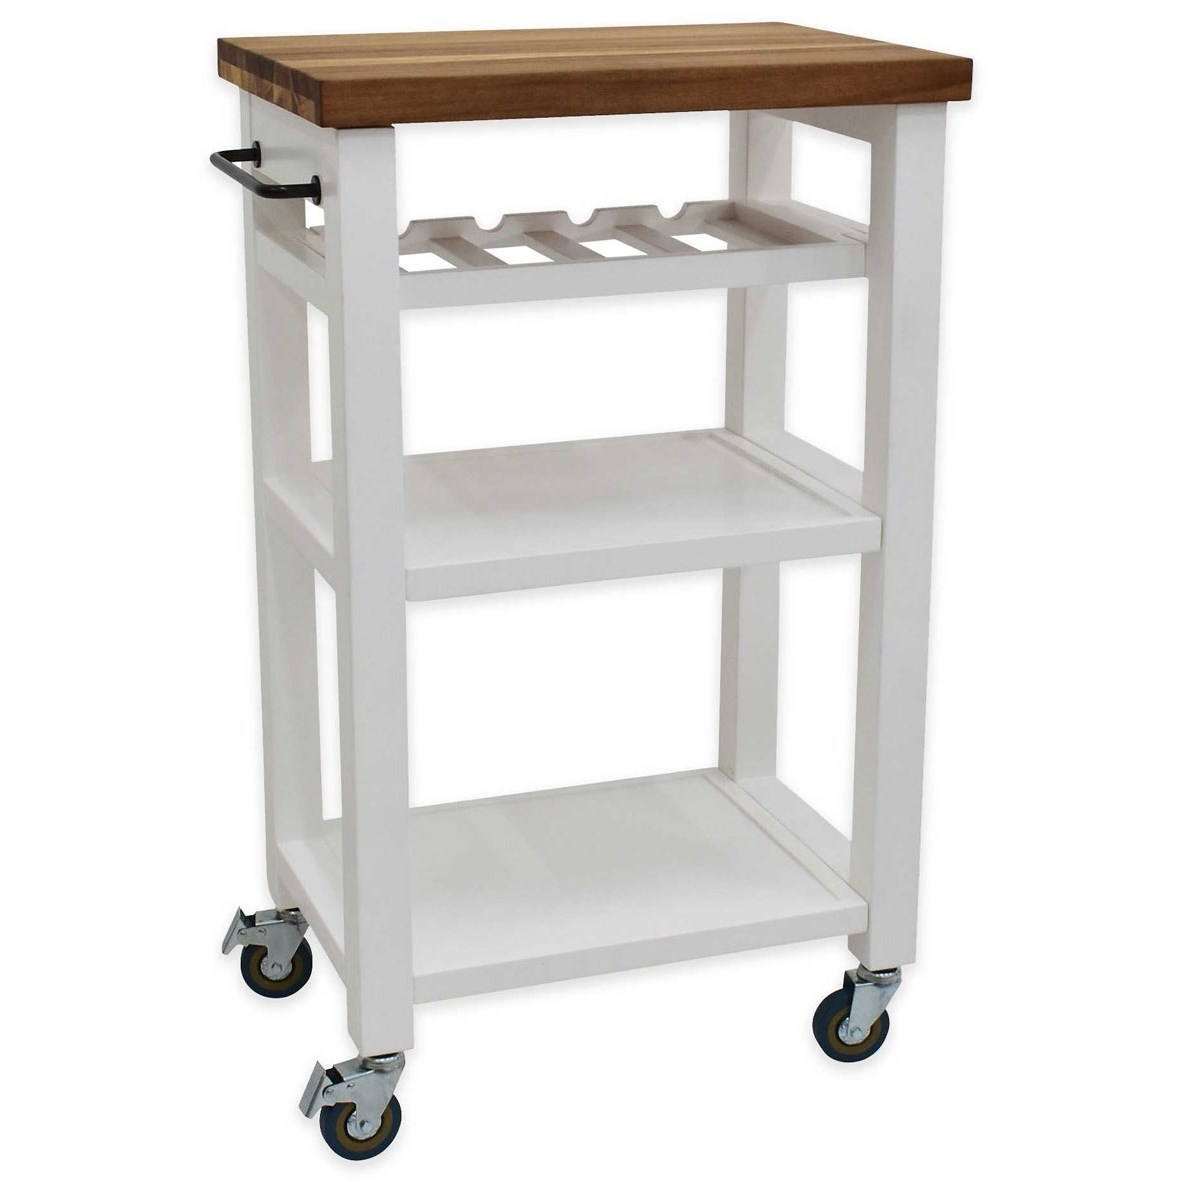 Belden Kitchen Cart by Steve Silver at Northeast Factory Direct